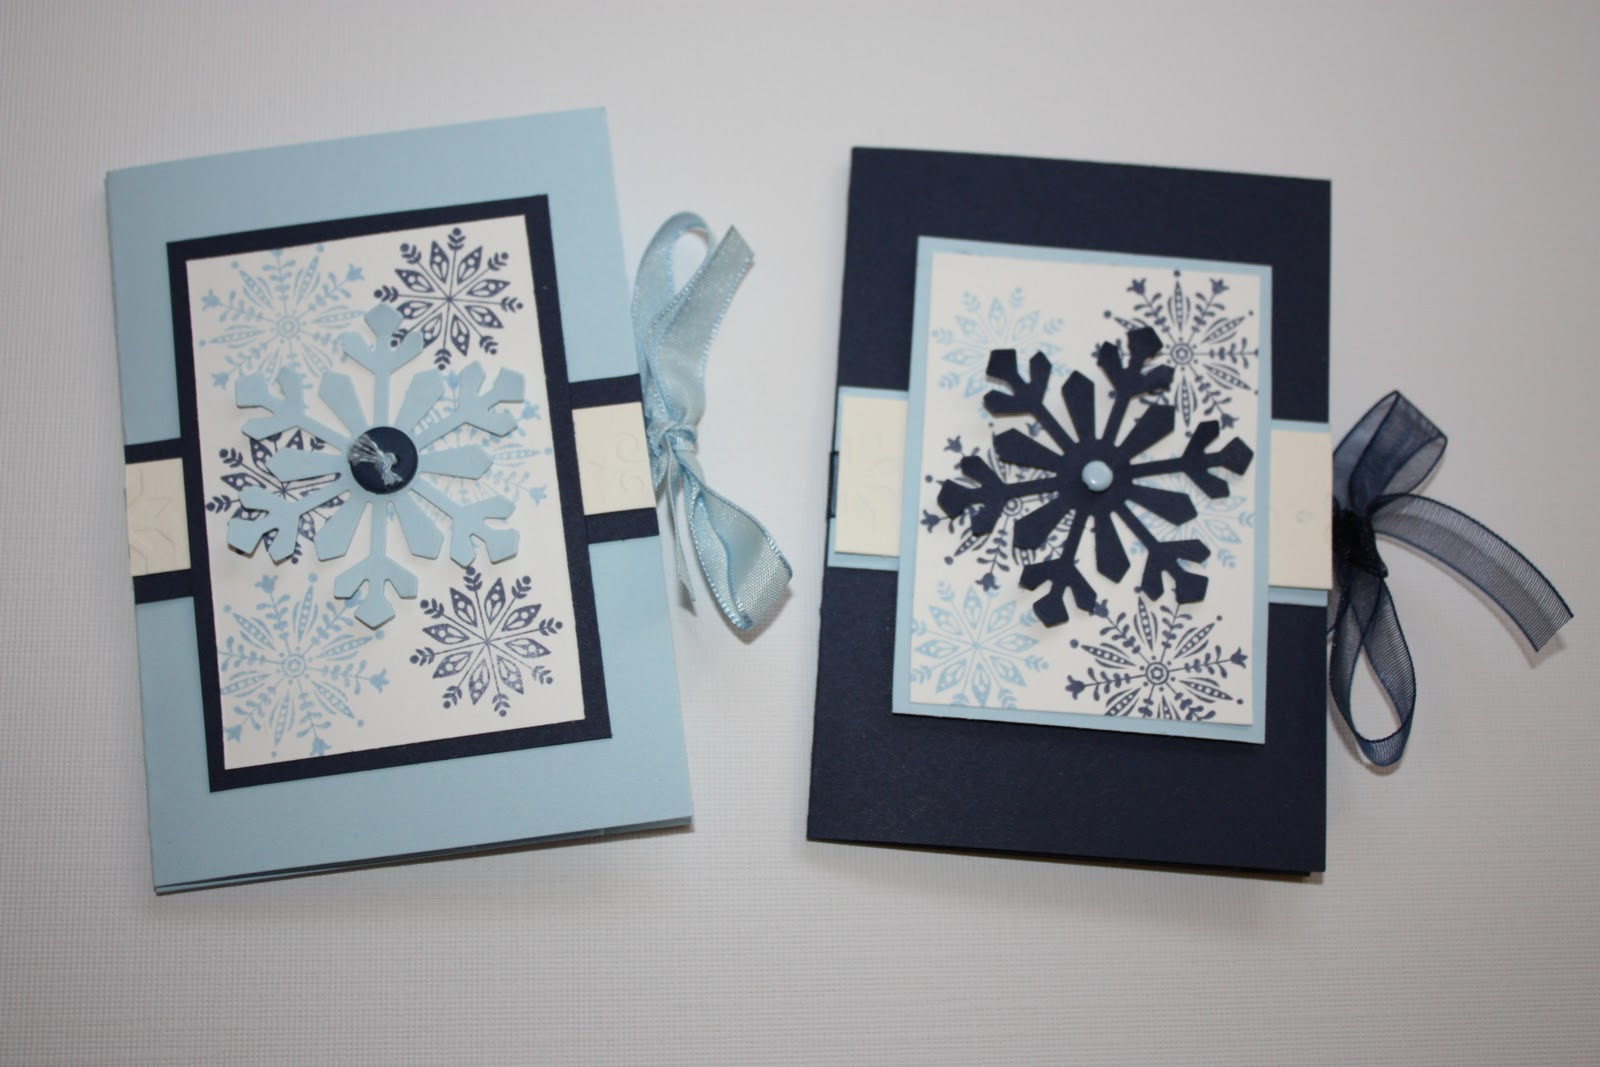 Best ideas about Gift Card Holder Ideas . Save or Pin Cards by Rita More Gift Card Holder Ideas Now.